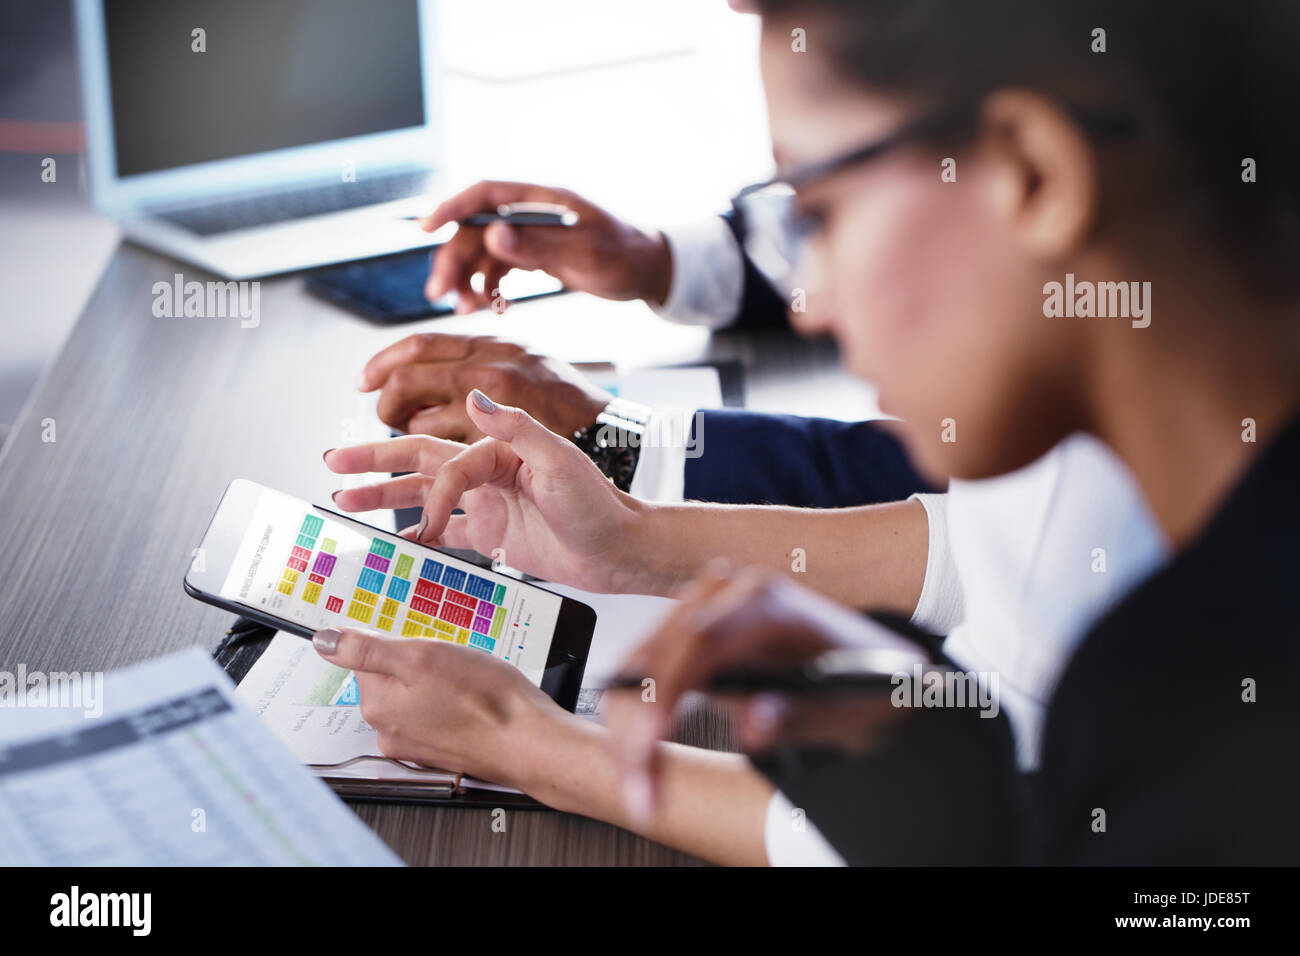 Team of business person works together. Concept of teamwork - Stock Image